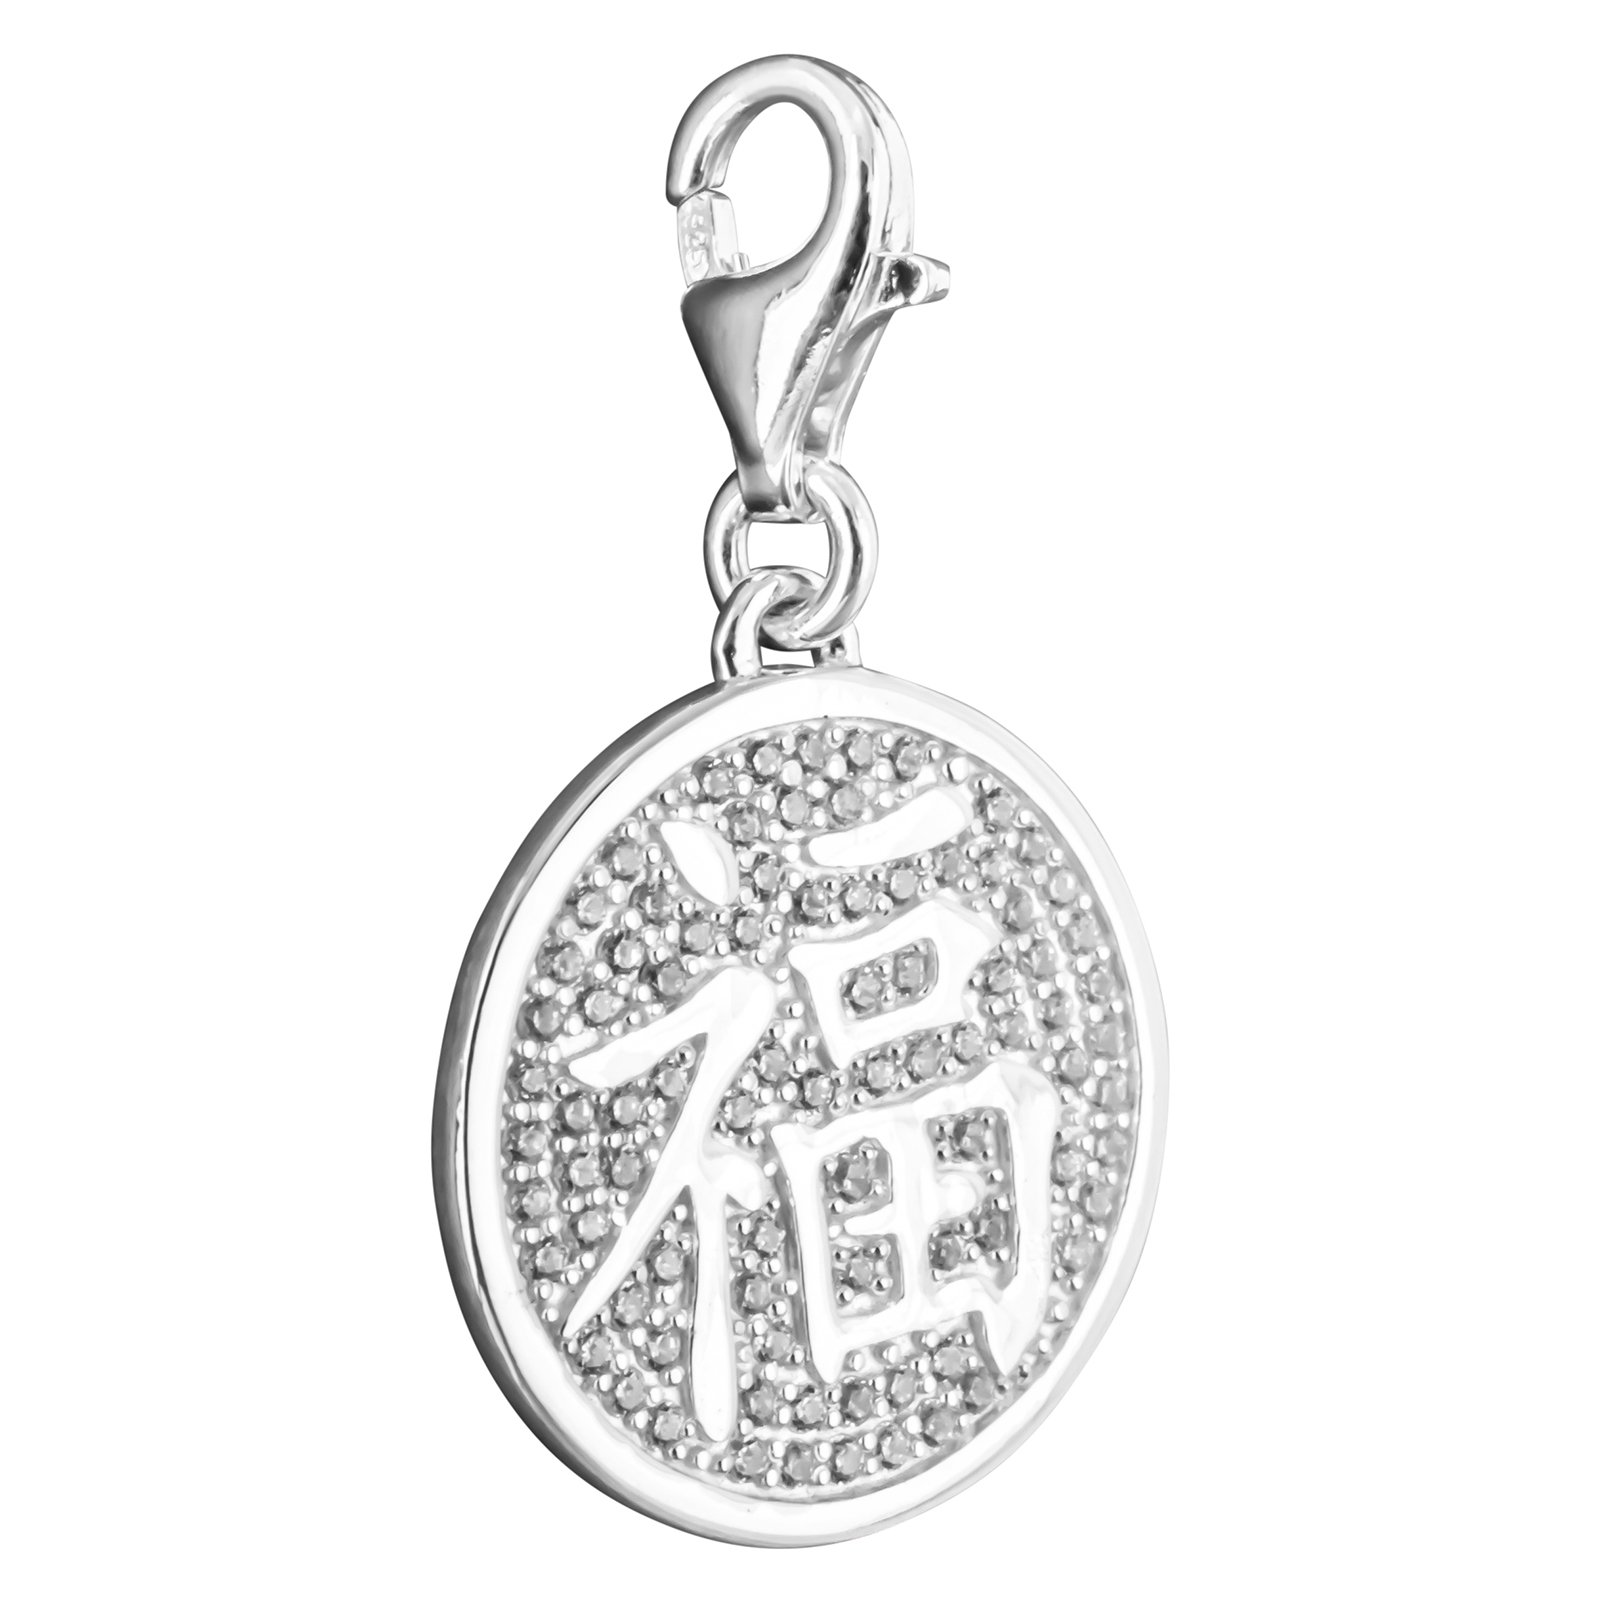 Thomas Sabo Luck Charm, Sterling Silver